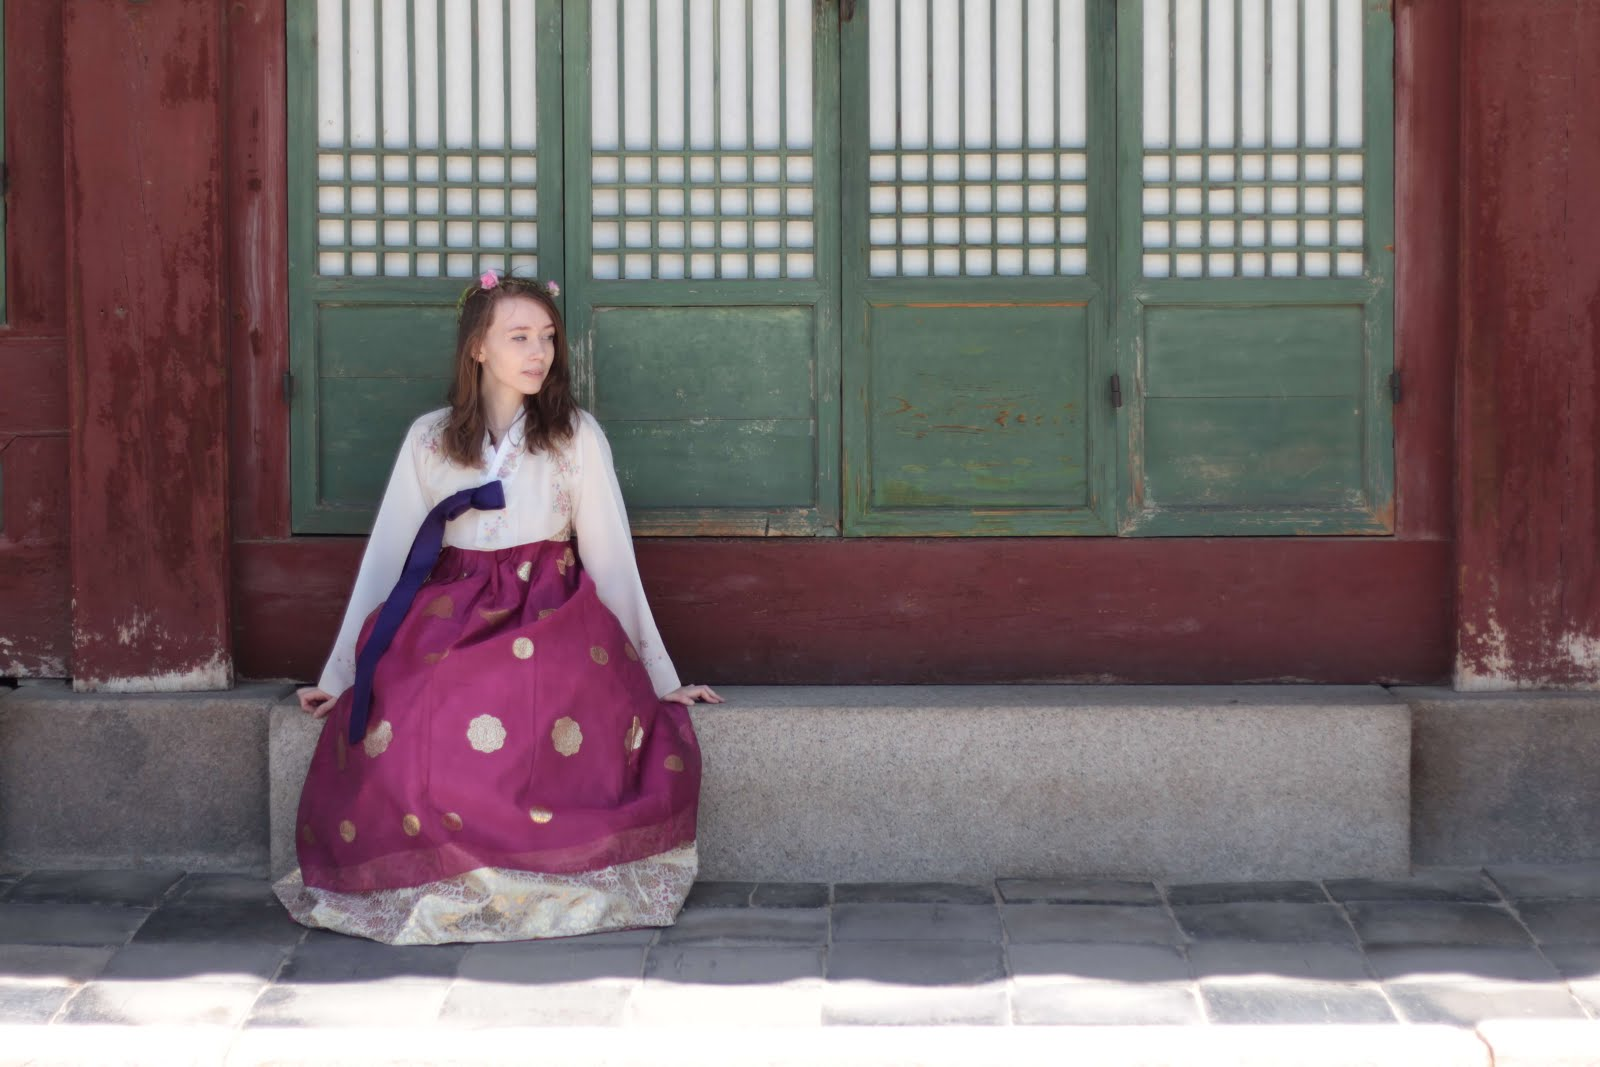 gyeongbokgung palace hanbok uk fashion blogger